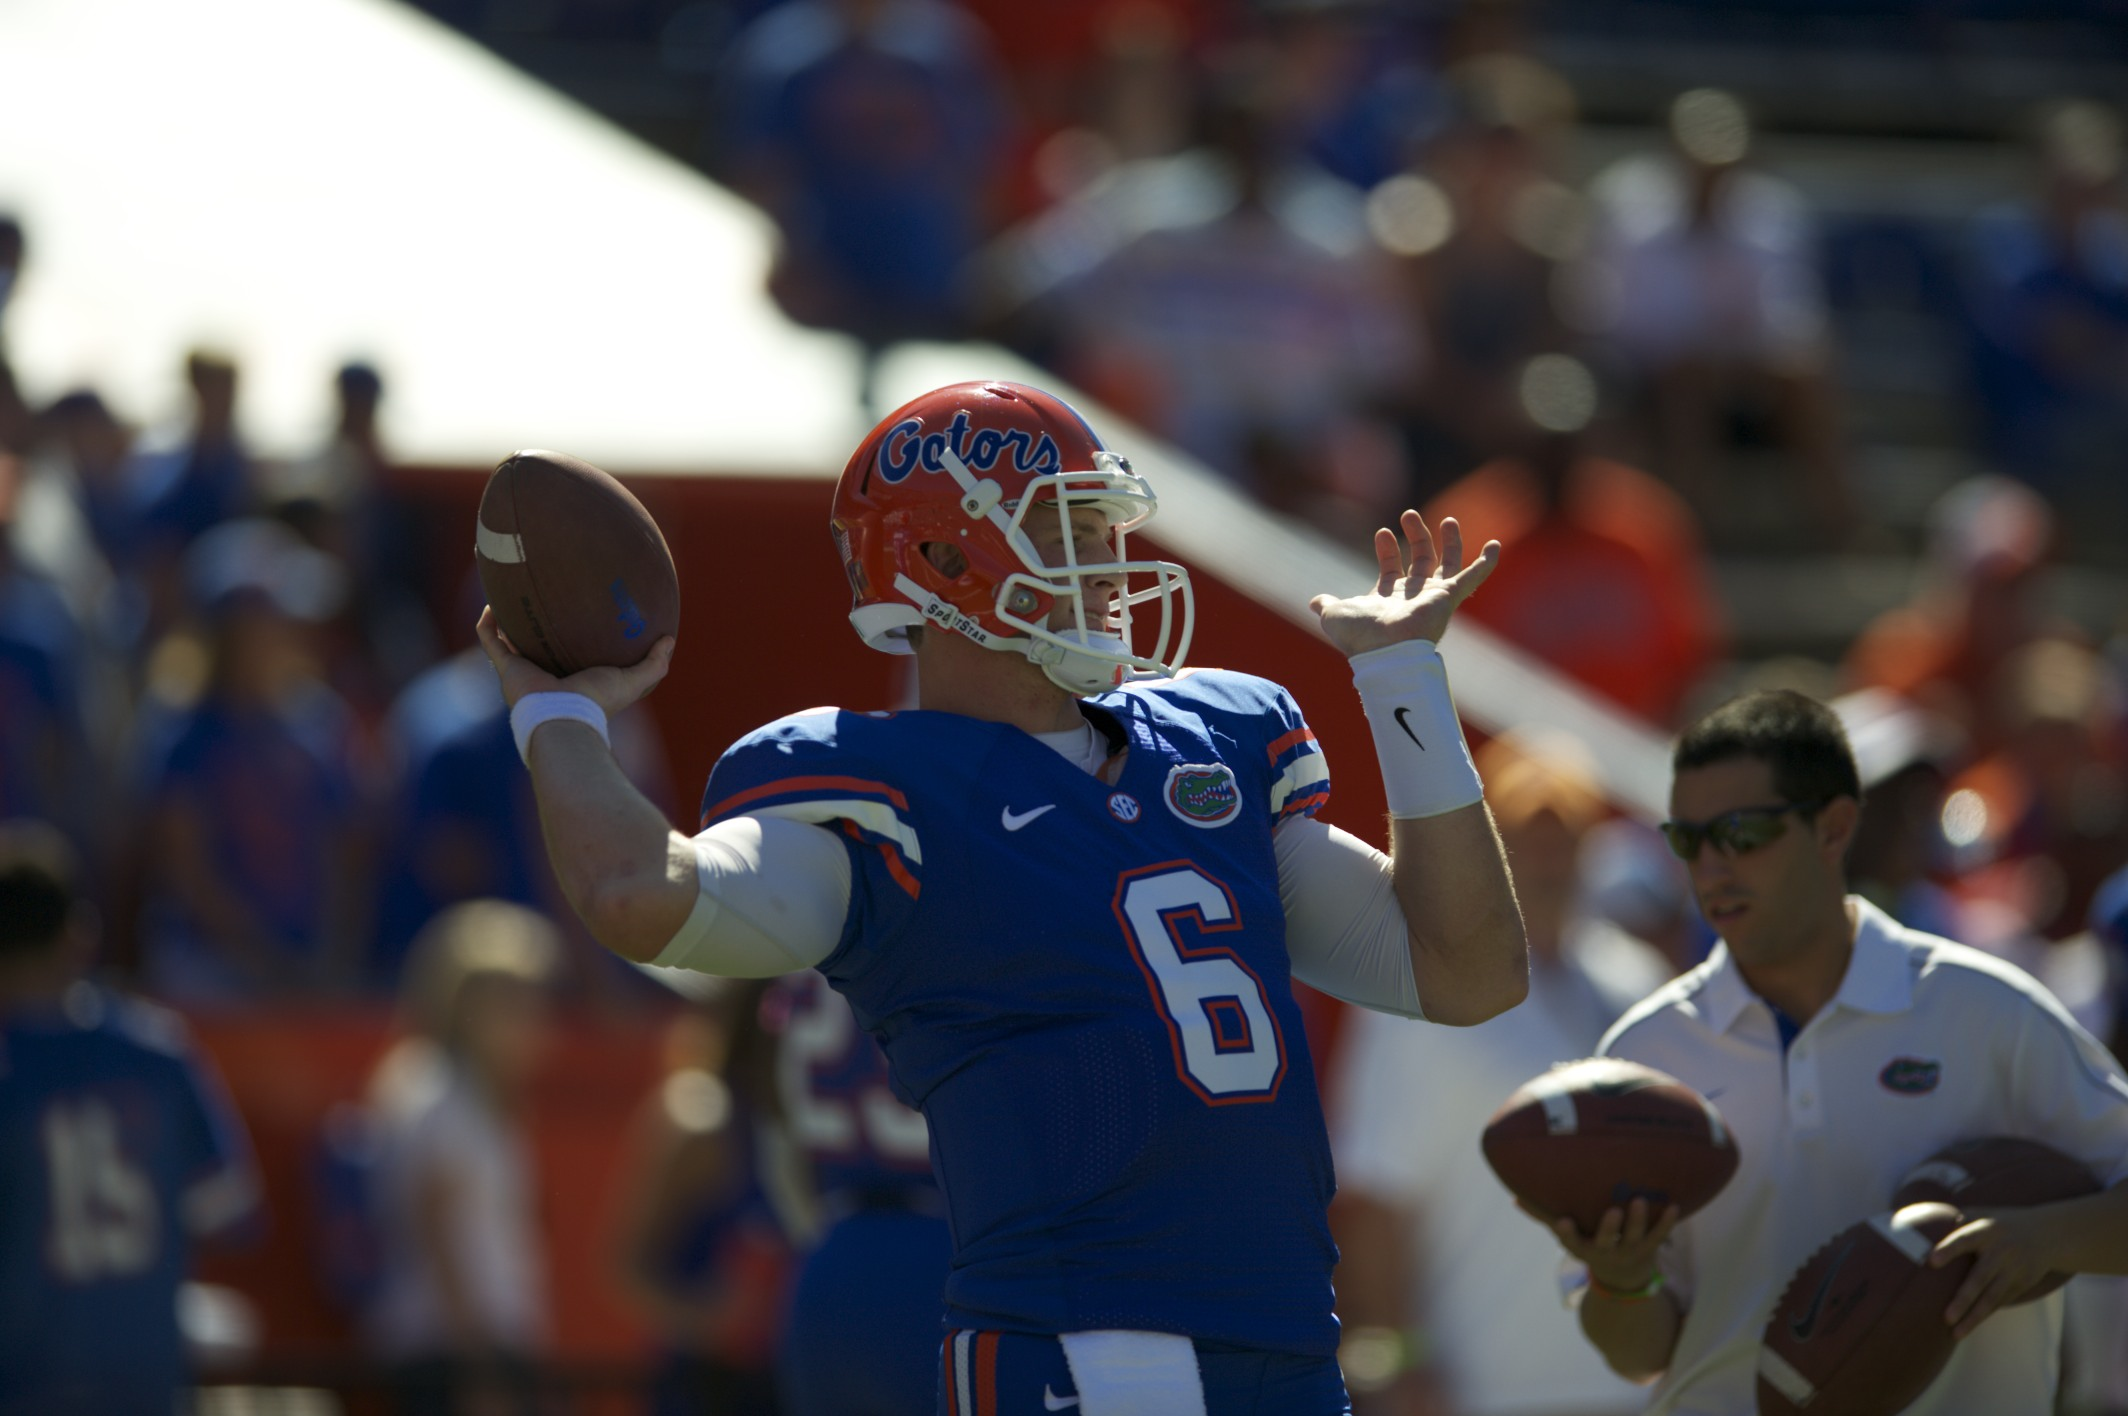 Quarterback Jeff Driskel warms up before the game against South Carolina Saturday.